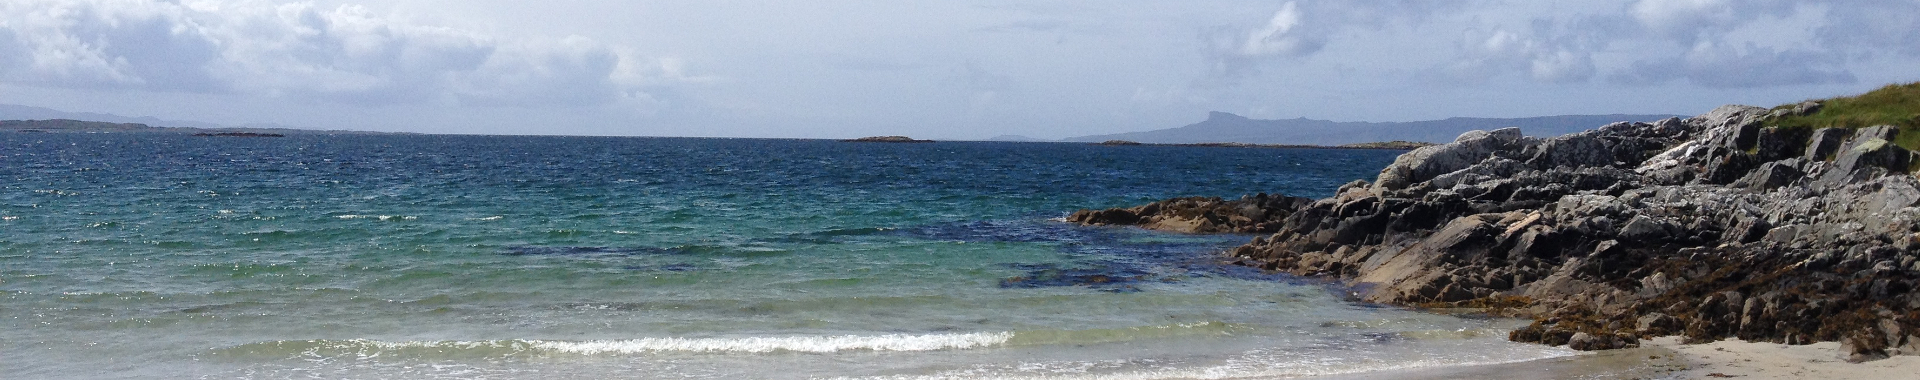 ARISAIG INSPIRATION